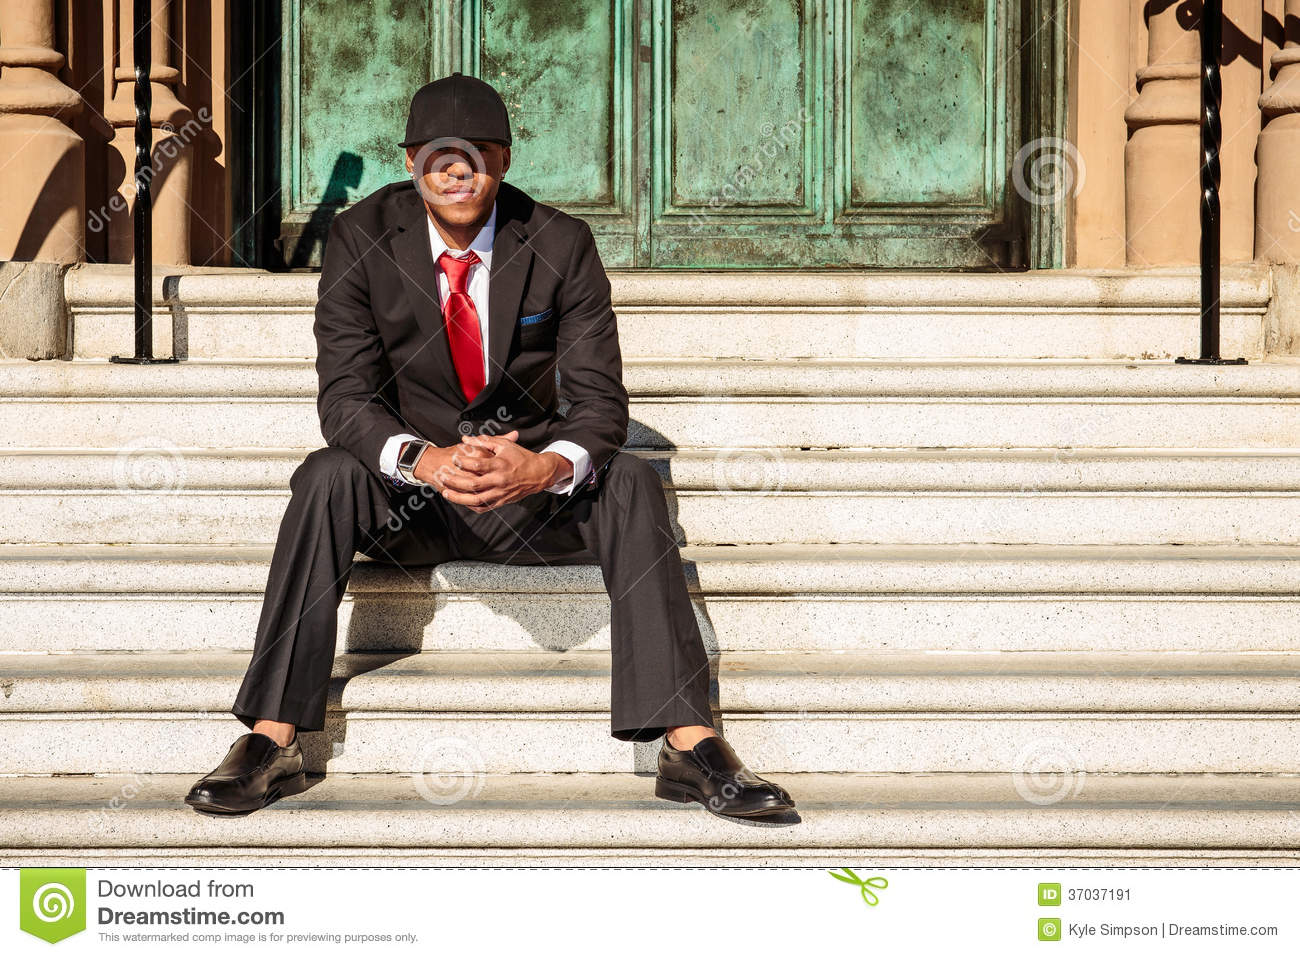 Man In Suit Sitting On Steps Stock Image